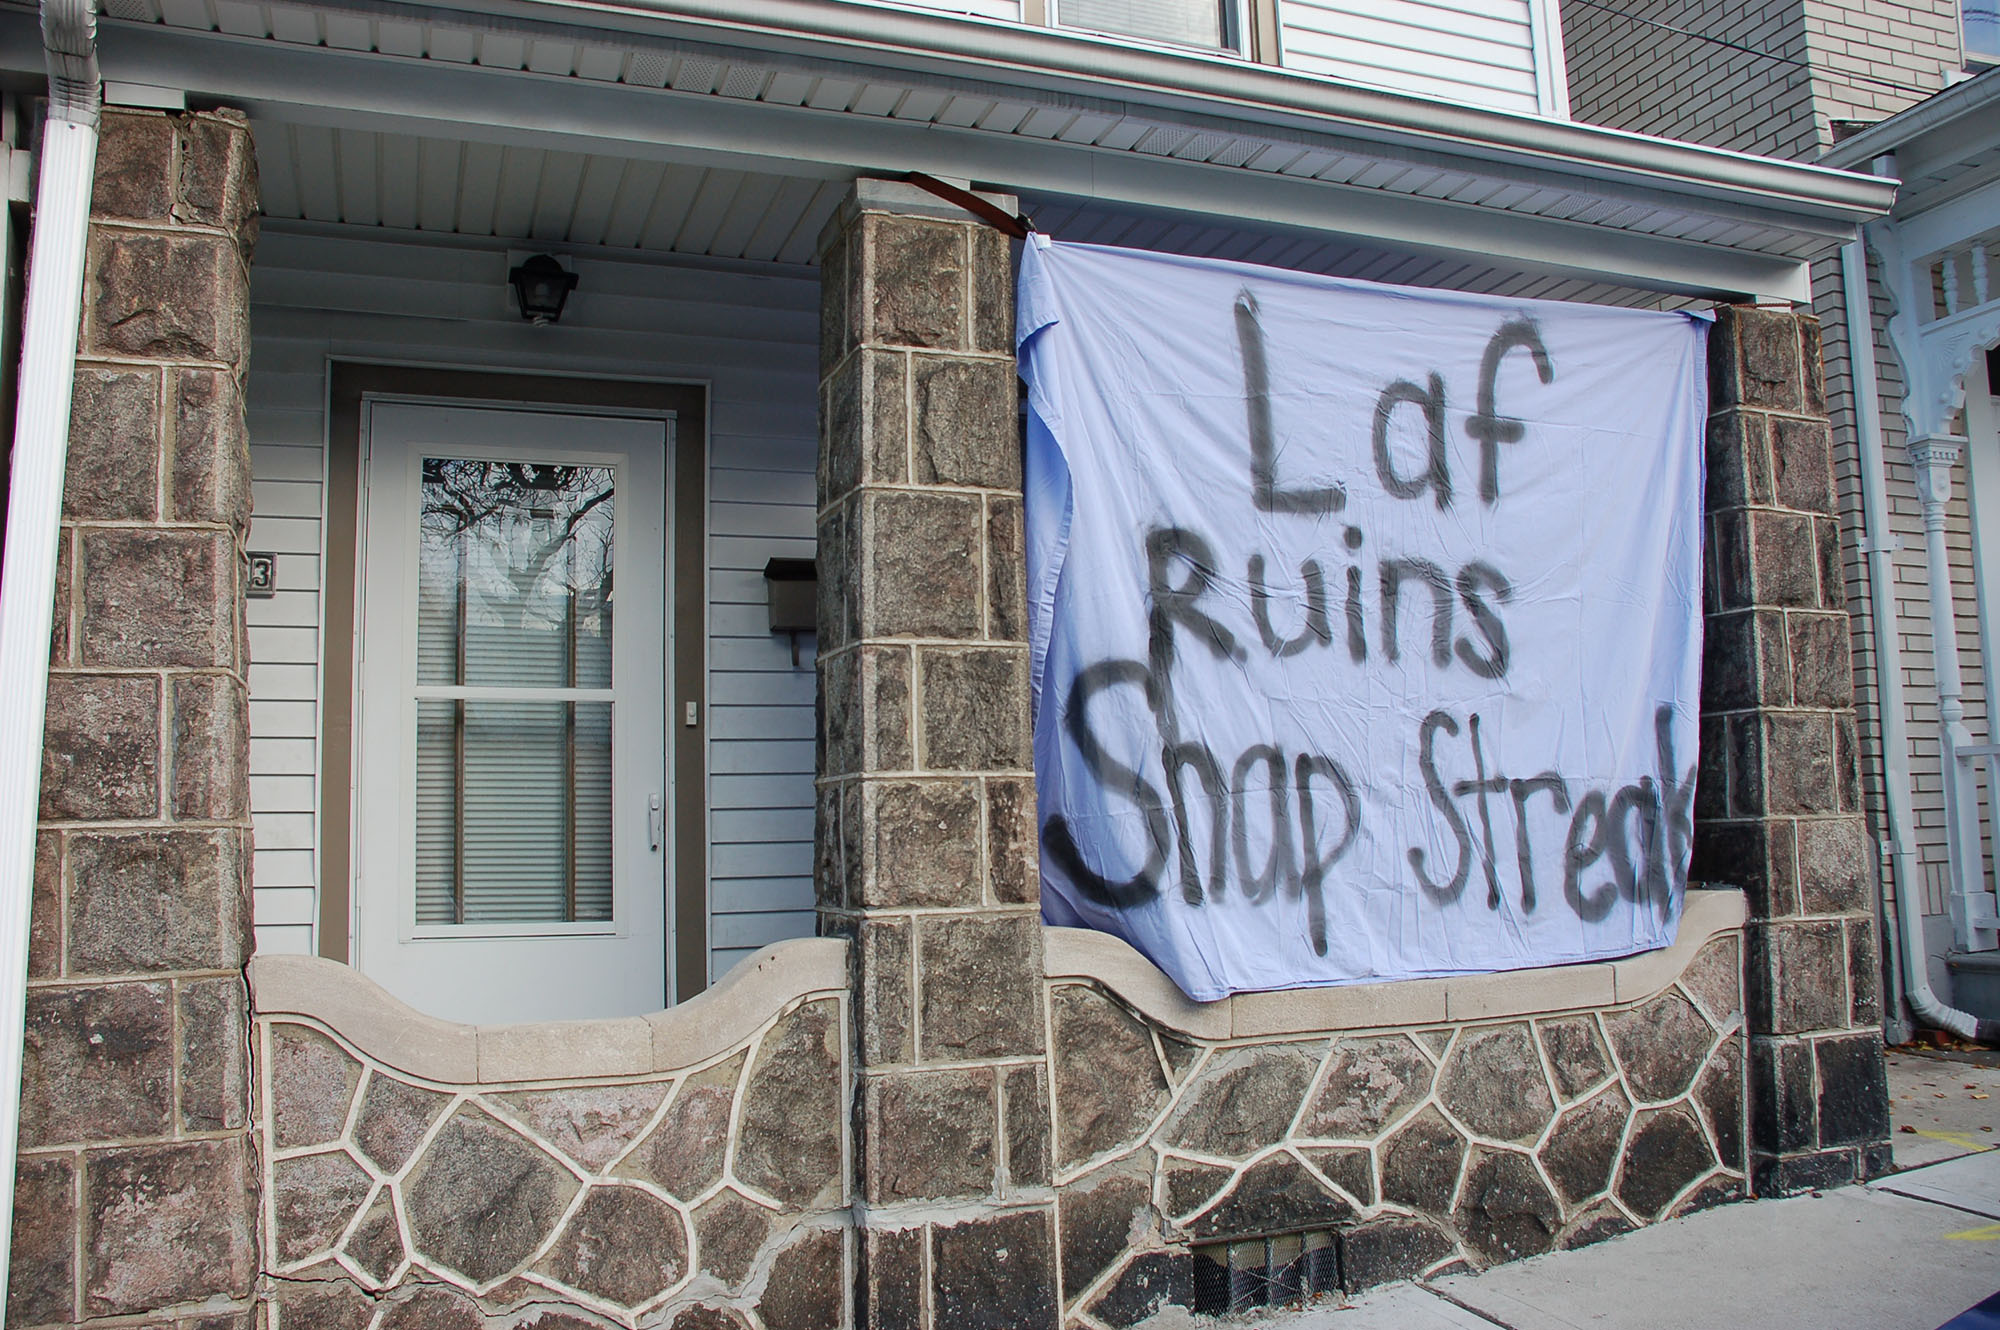 "A sign reading ""Laf ruins snap streak"" hangs on a house on Webster Street on Nov. 15, 2016. Spray-painted sheets can be seen displayed on houses up and down Webster Street. (Samantha Tomaszewski/B&W Staff)"